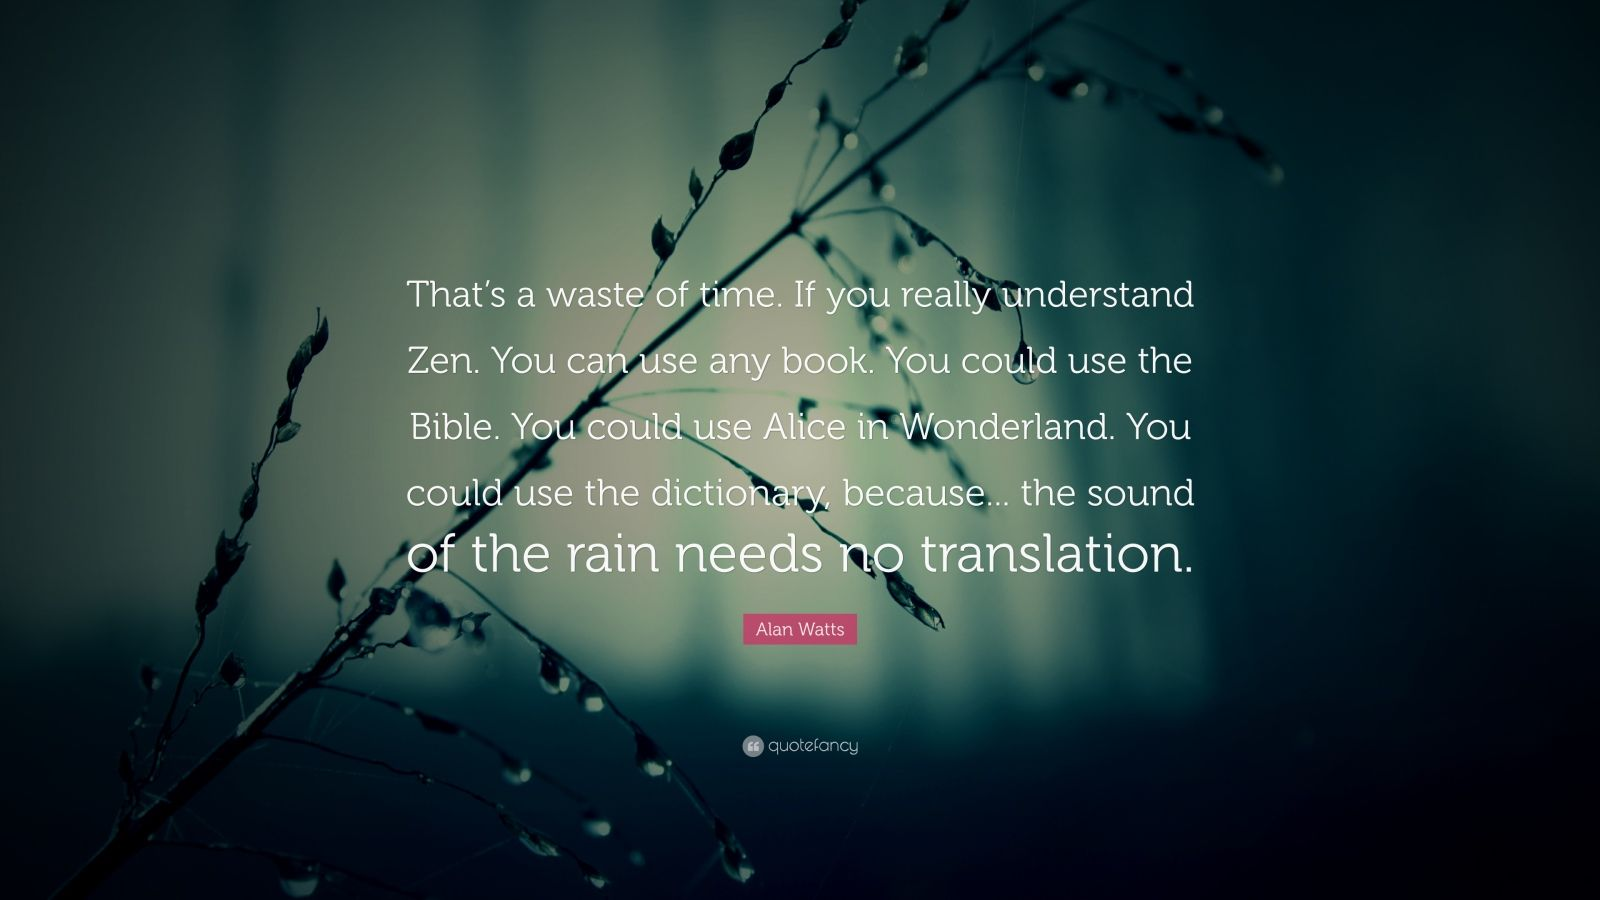 """Alan Watts Quote: """"That's a waste of time. If you really understand Zen. You can use any book. You could use the Bible. You could use Alice in Wonderland. You could use the dictionary, because... the sound of the rain needs no translation."""""""